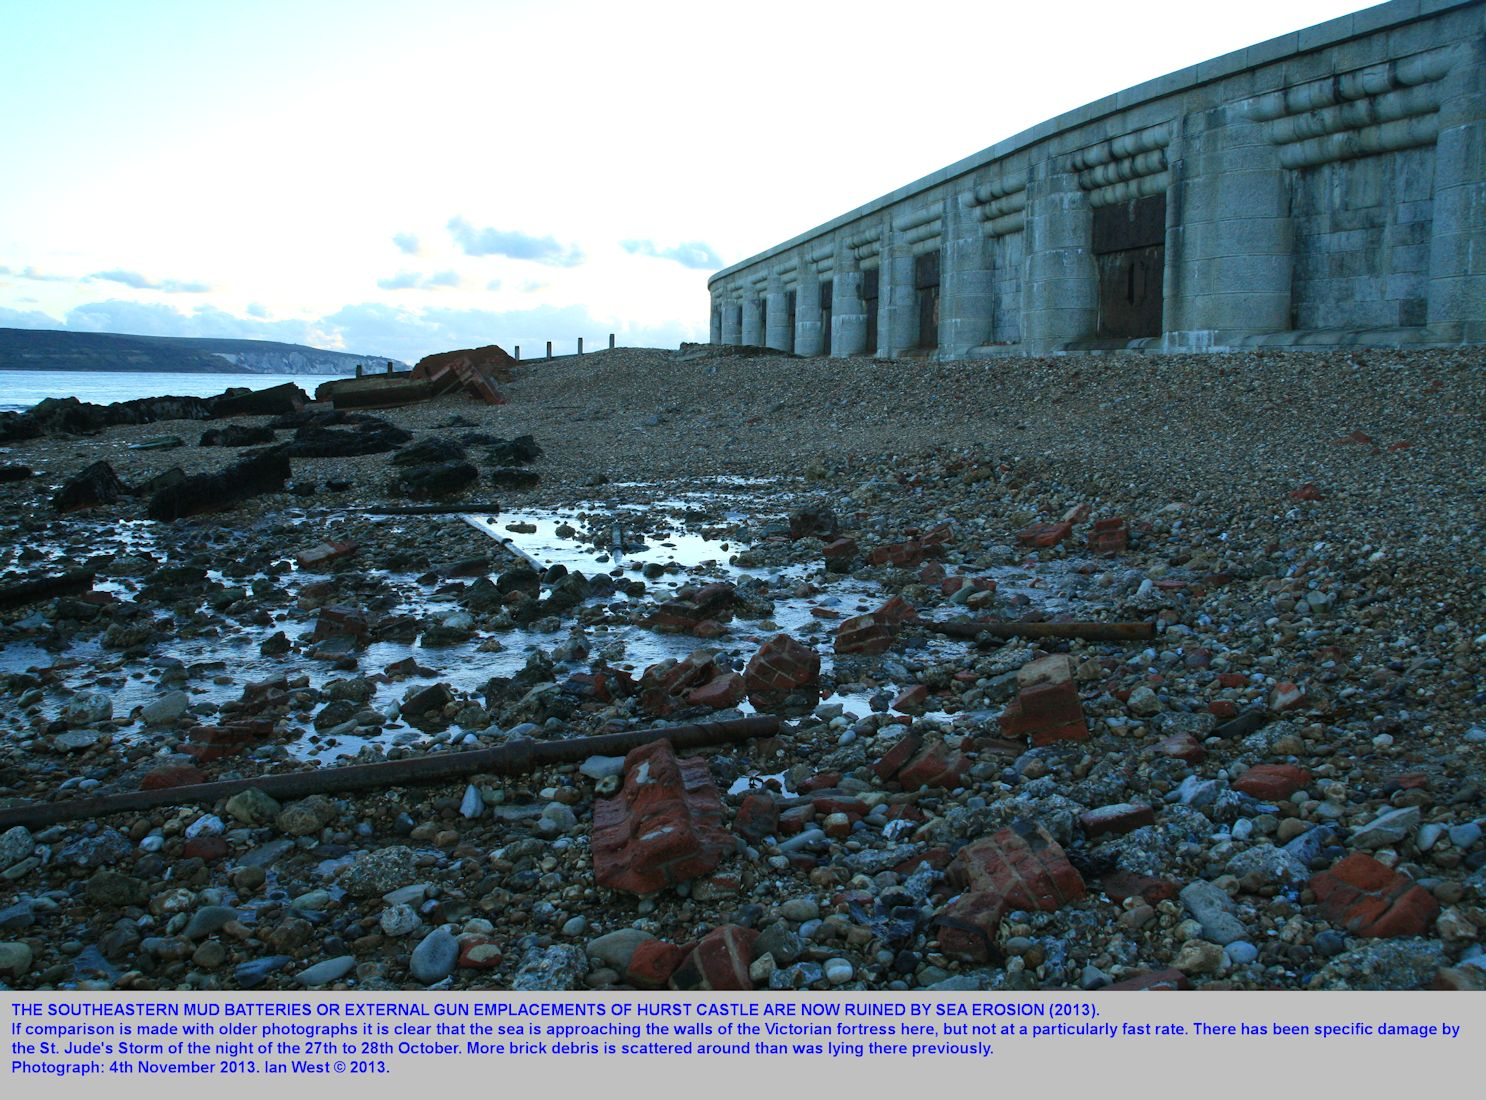 Continued devastation of the southeastern Earth Batteries, old gun emplacements, at the southeastern end of Hurst Castle and Hurst Spit, Hampshire, November 2013